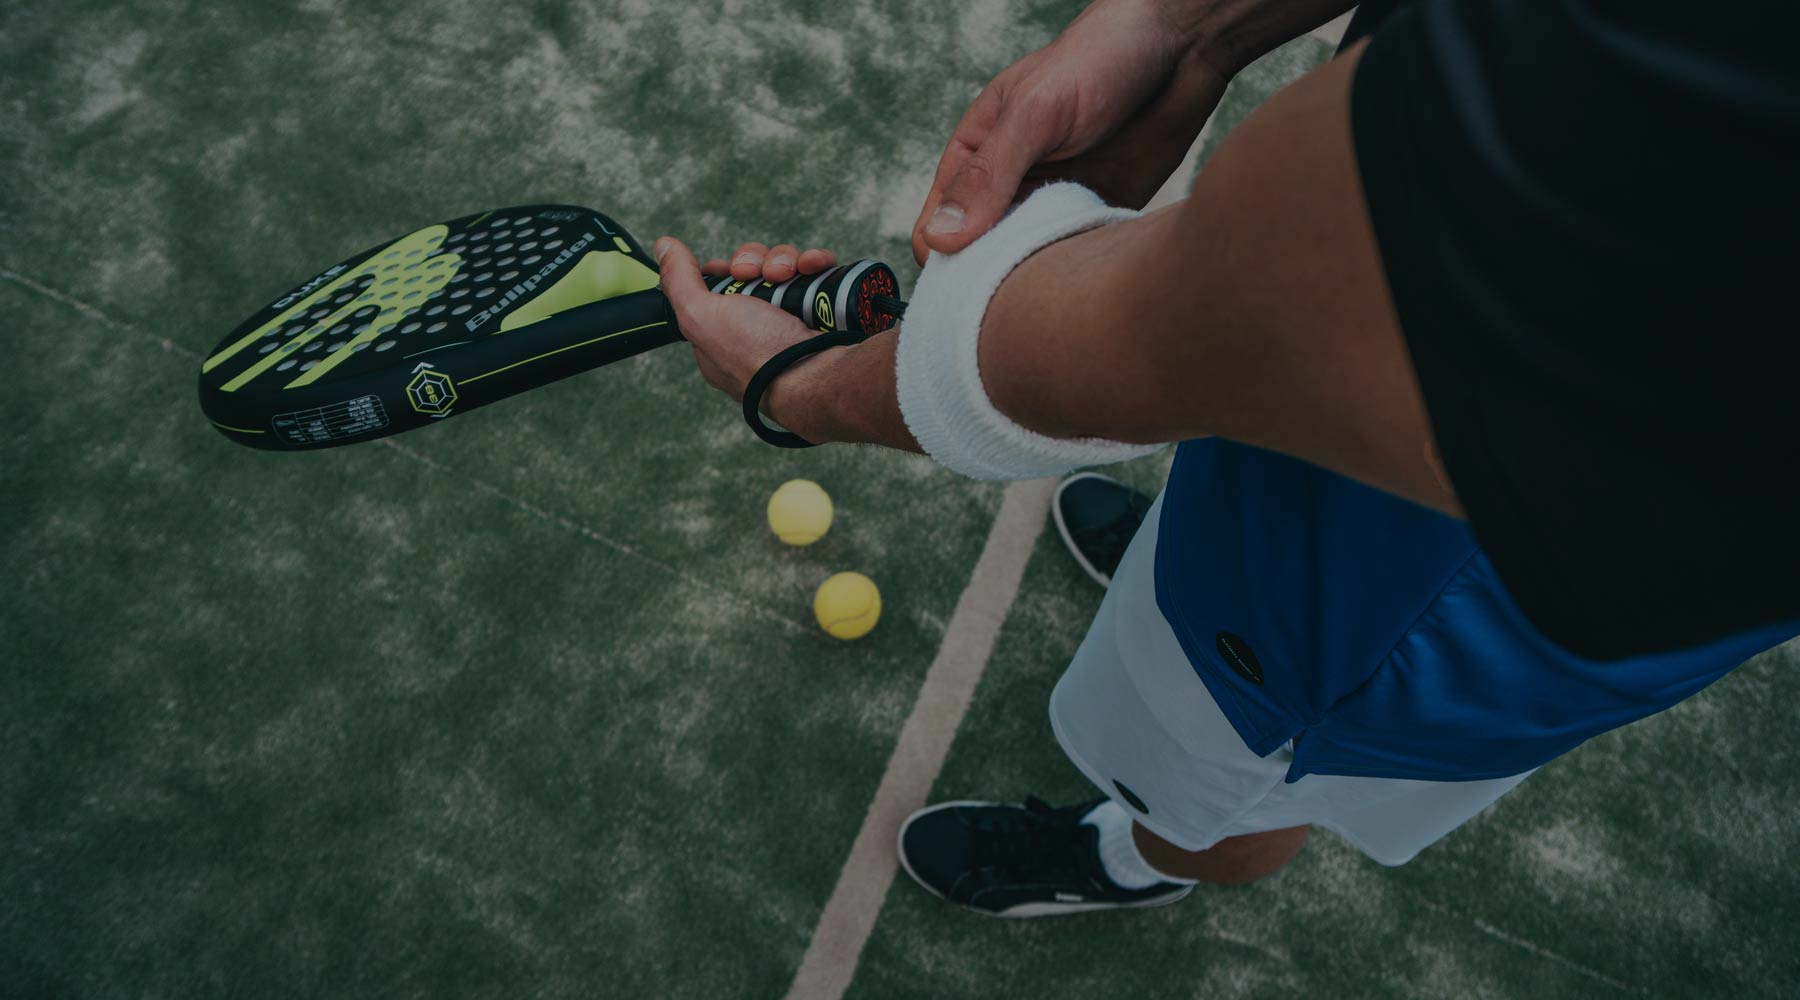 Treatment For Elbow Tendinitis and Tennis Elbow